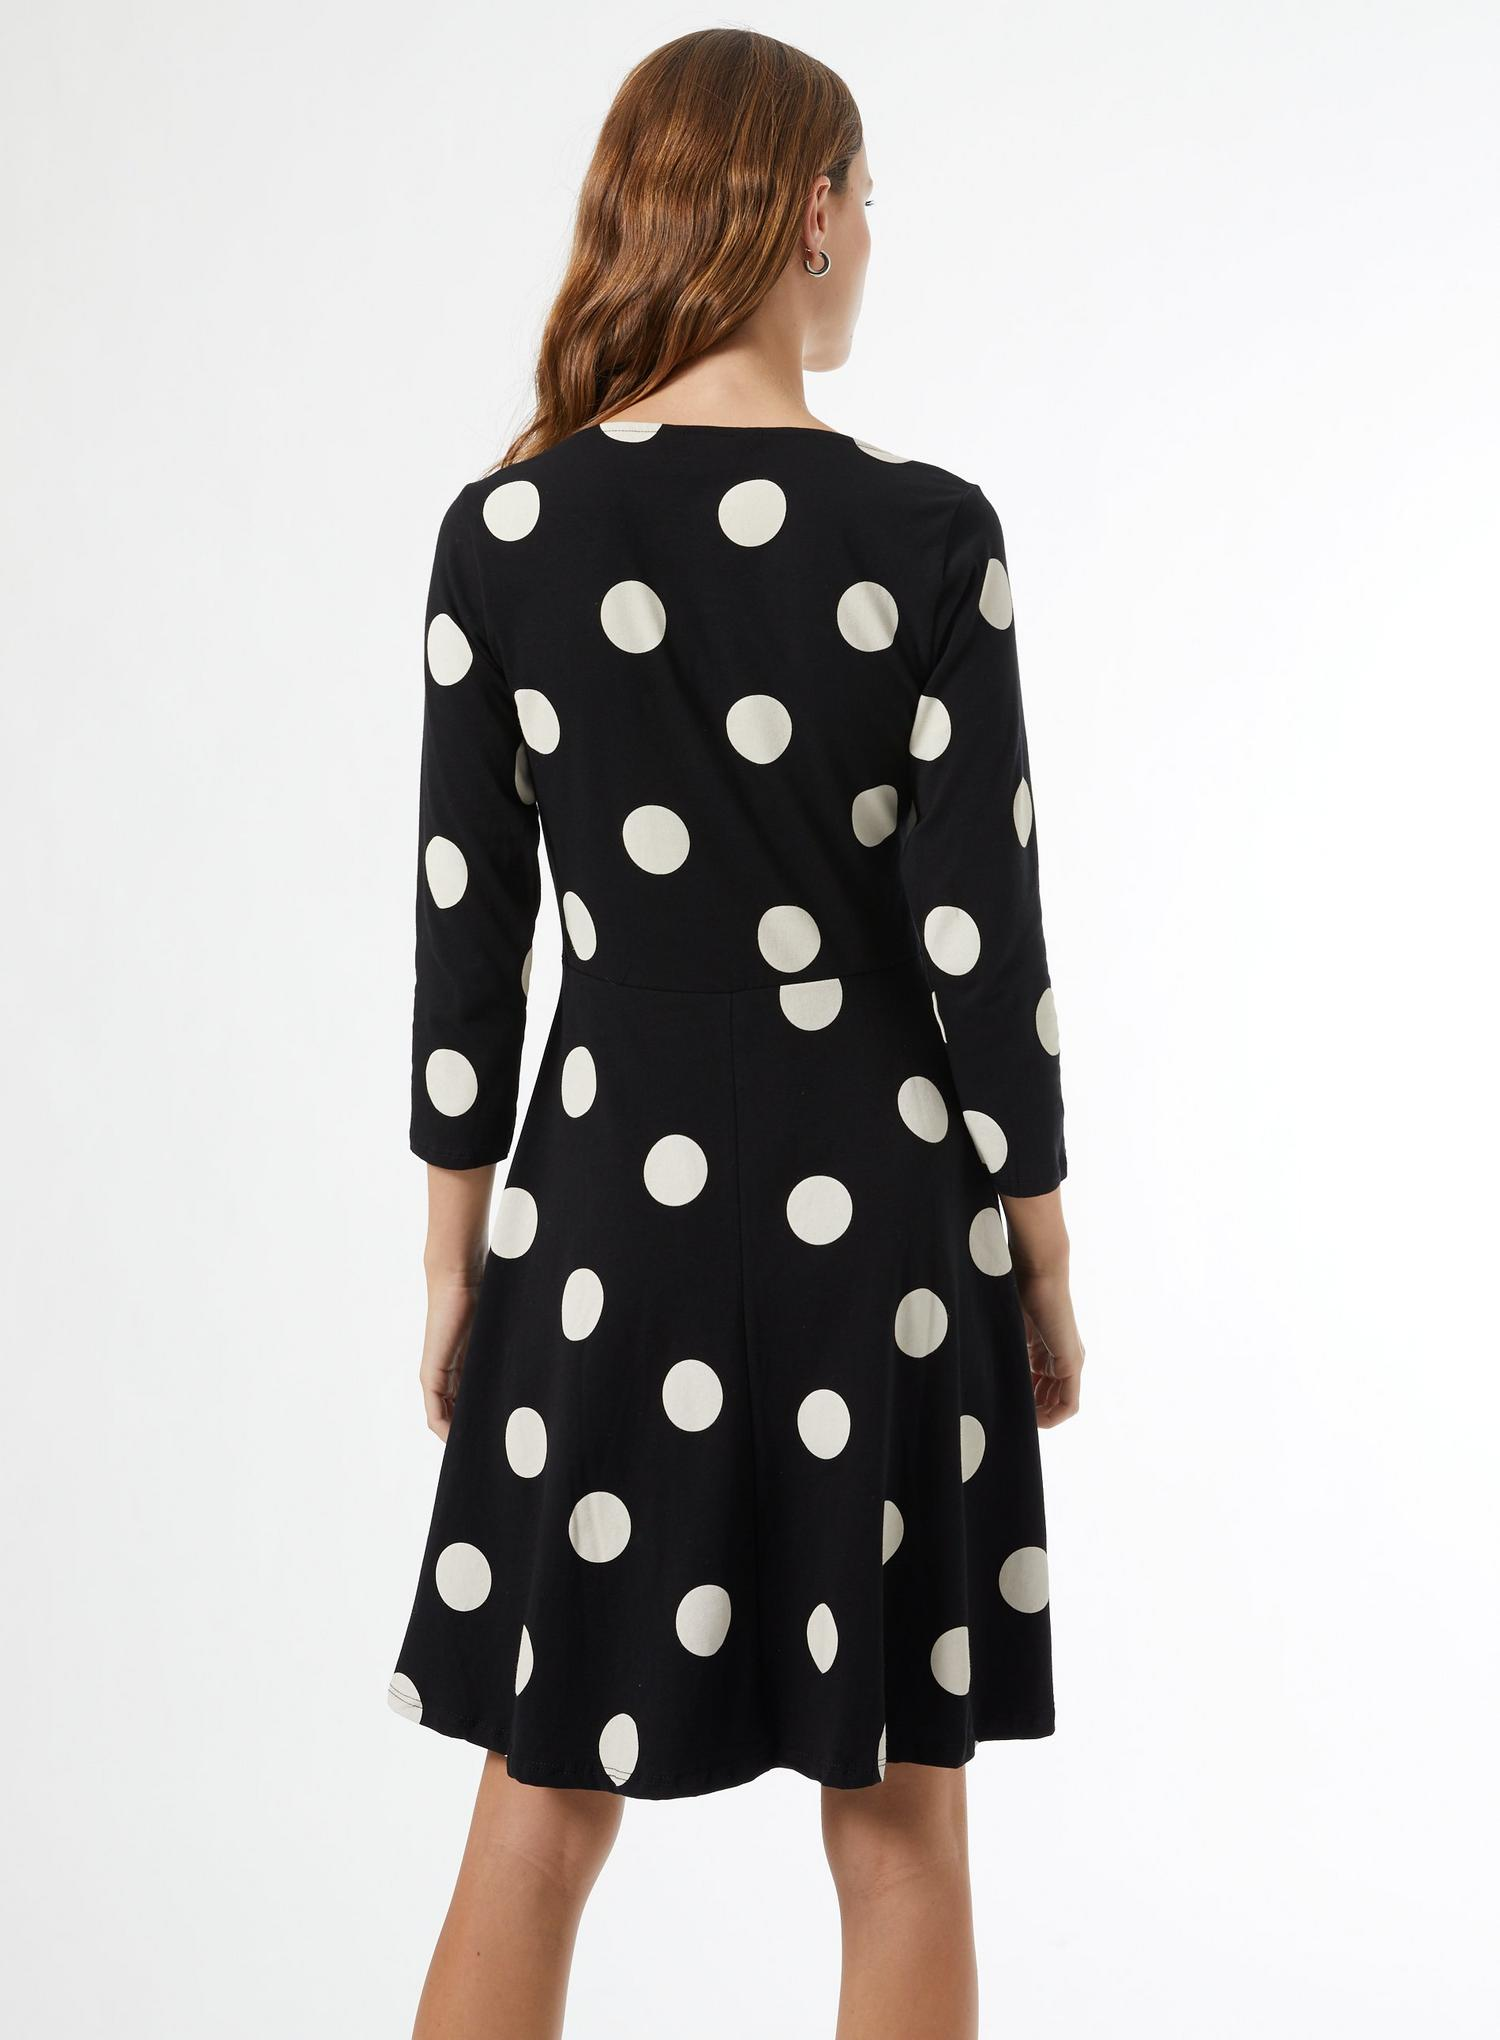 105 Black Spot Ruched Organic Cotton Mini Dress image number 4